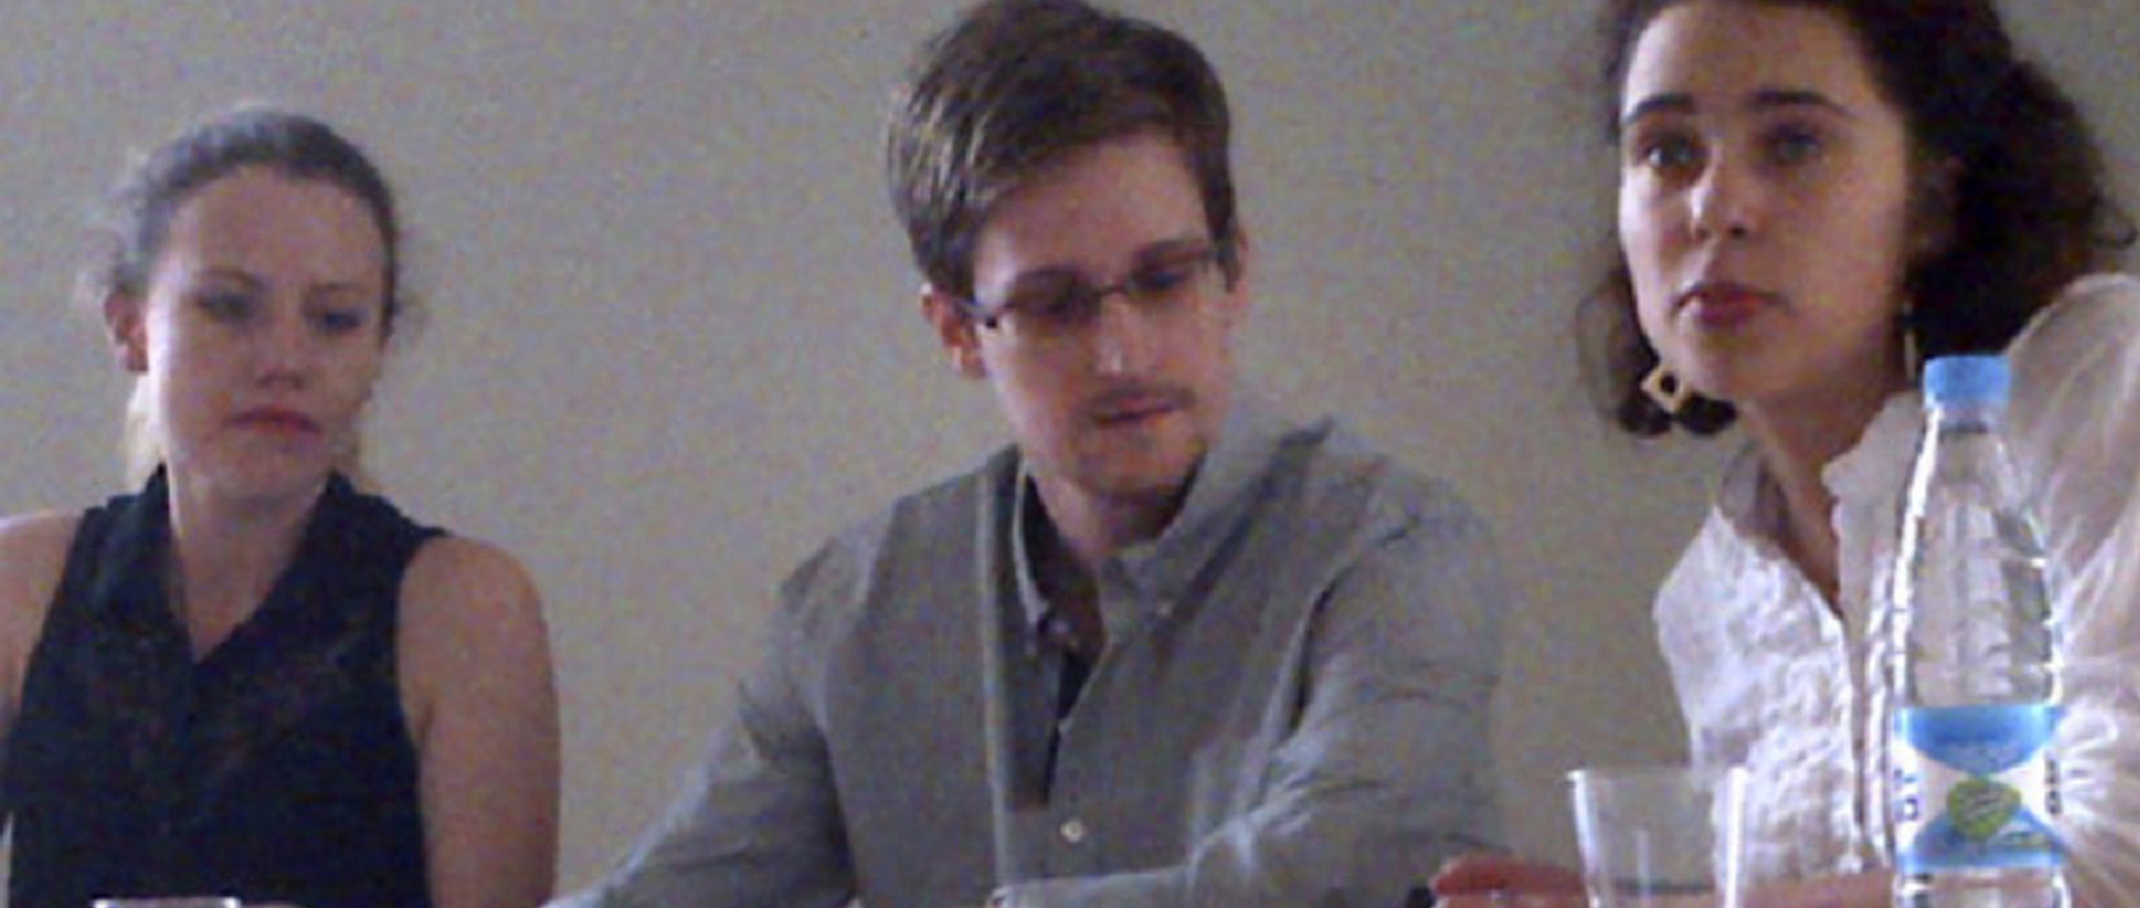 Editorial boards float prospect of pardon for Snowden